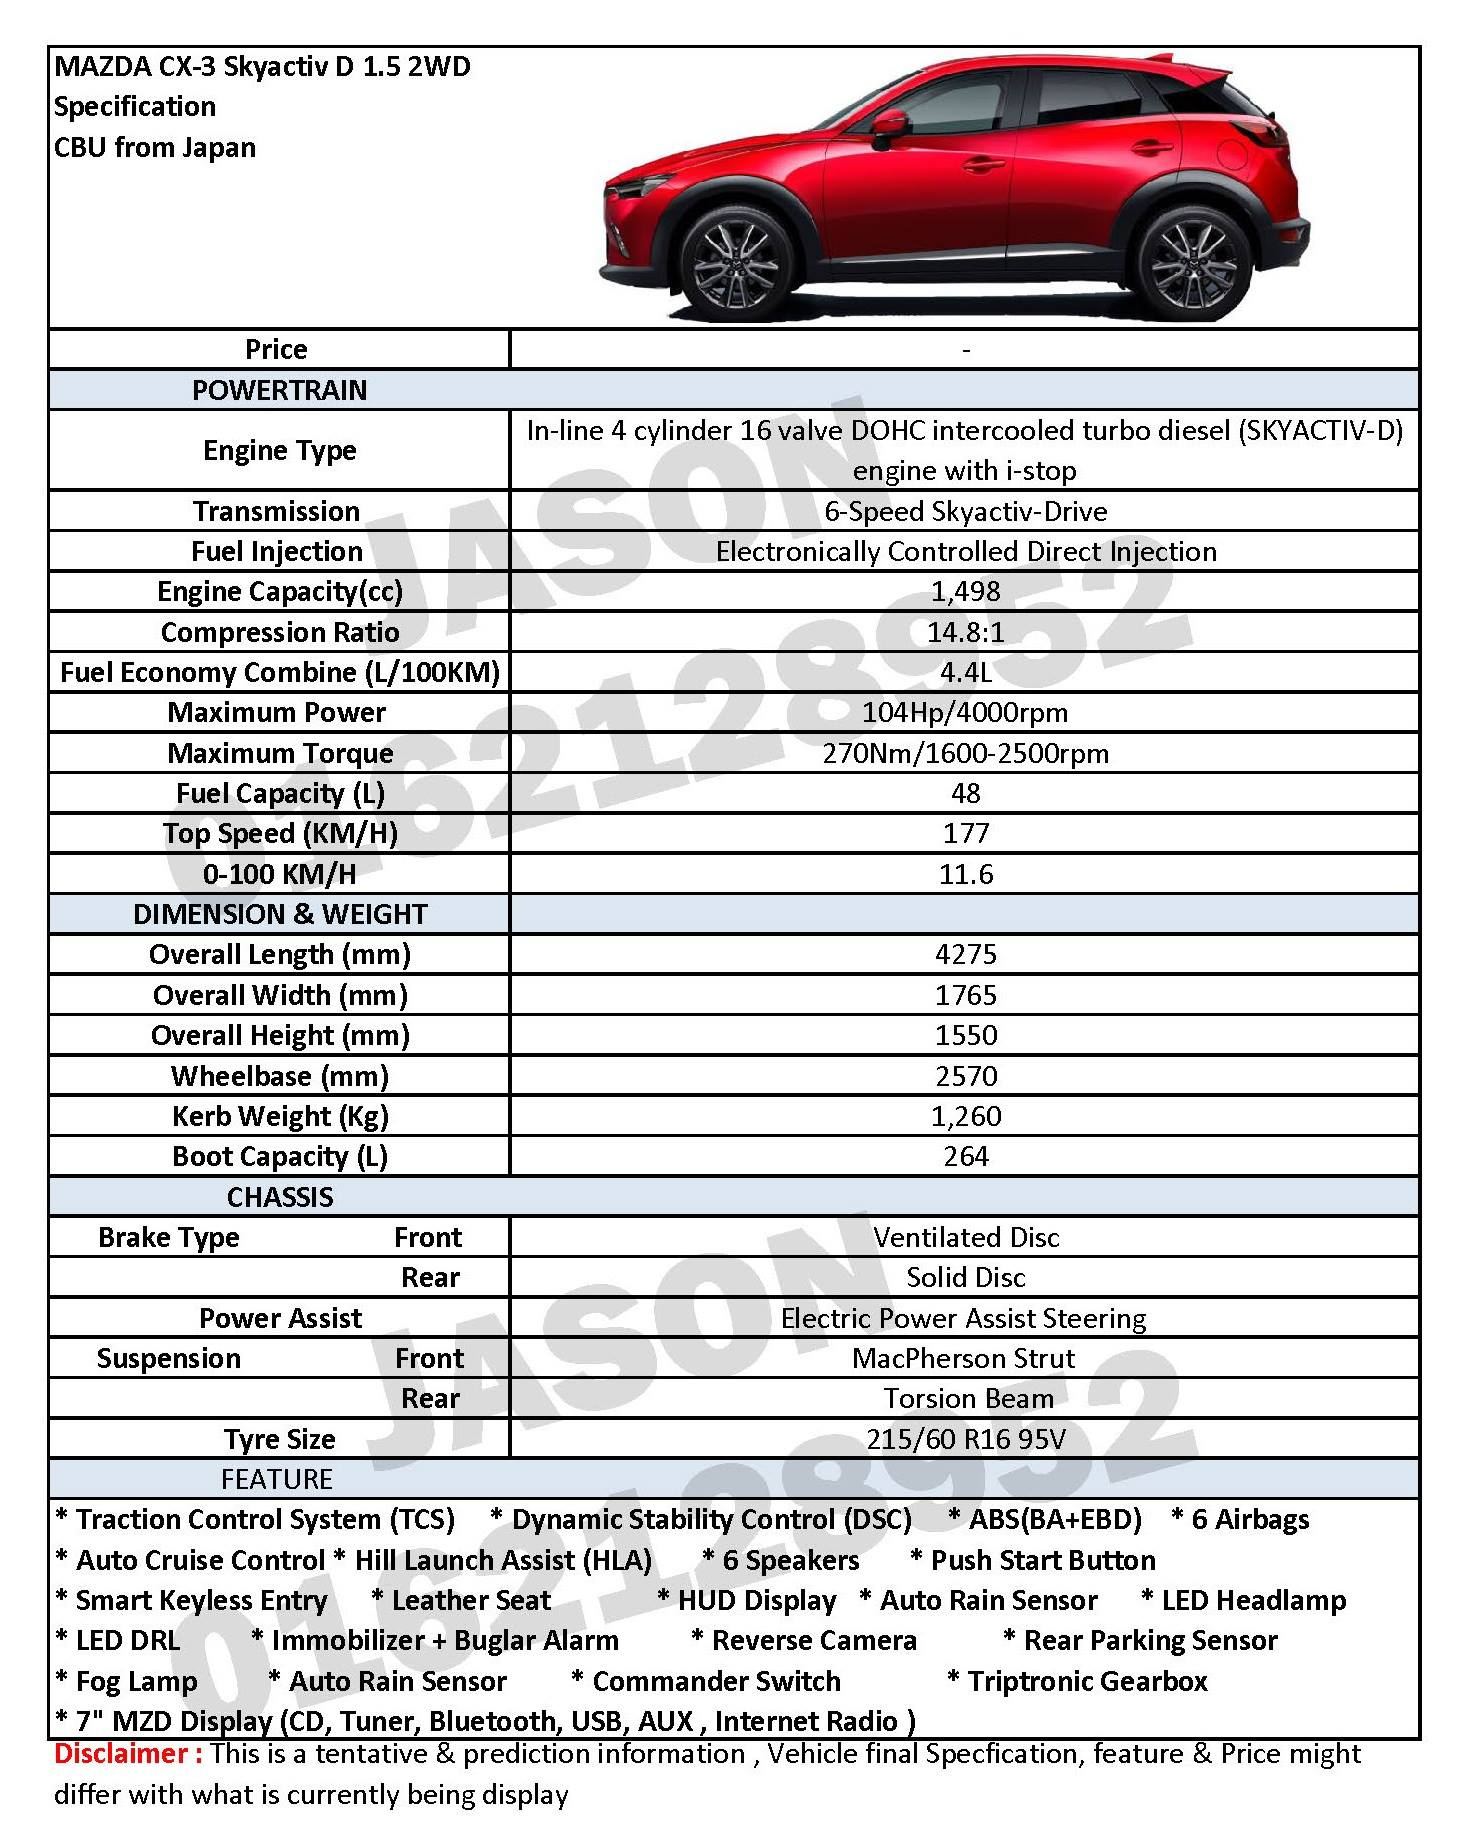 Mazda CX-3 1.5 diesel to be in Malaysia end of year? Image 345035